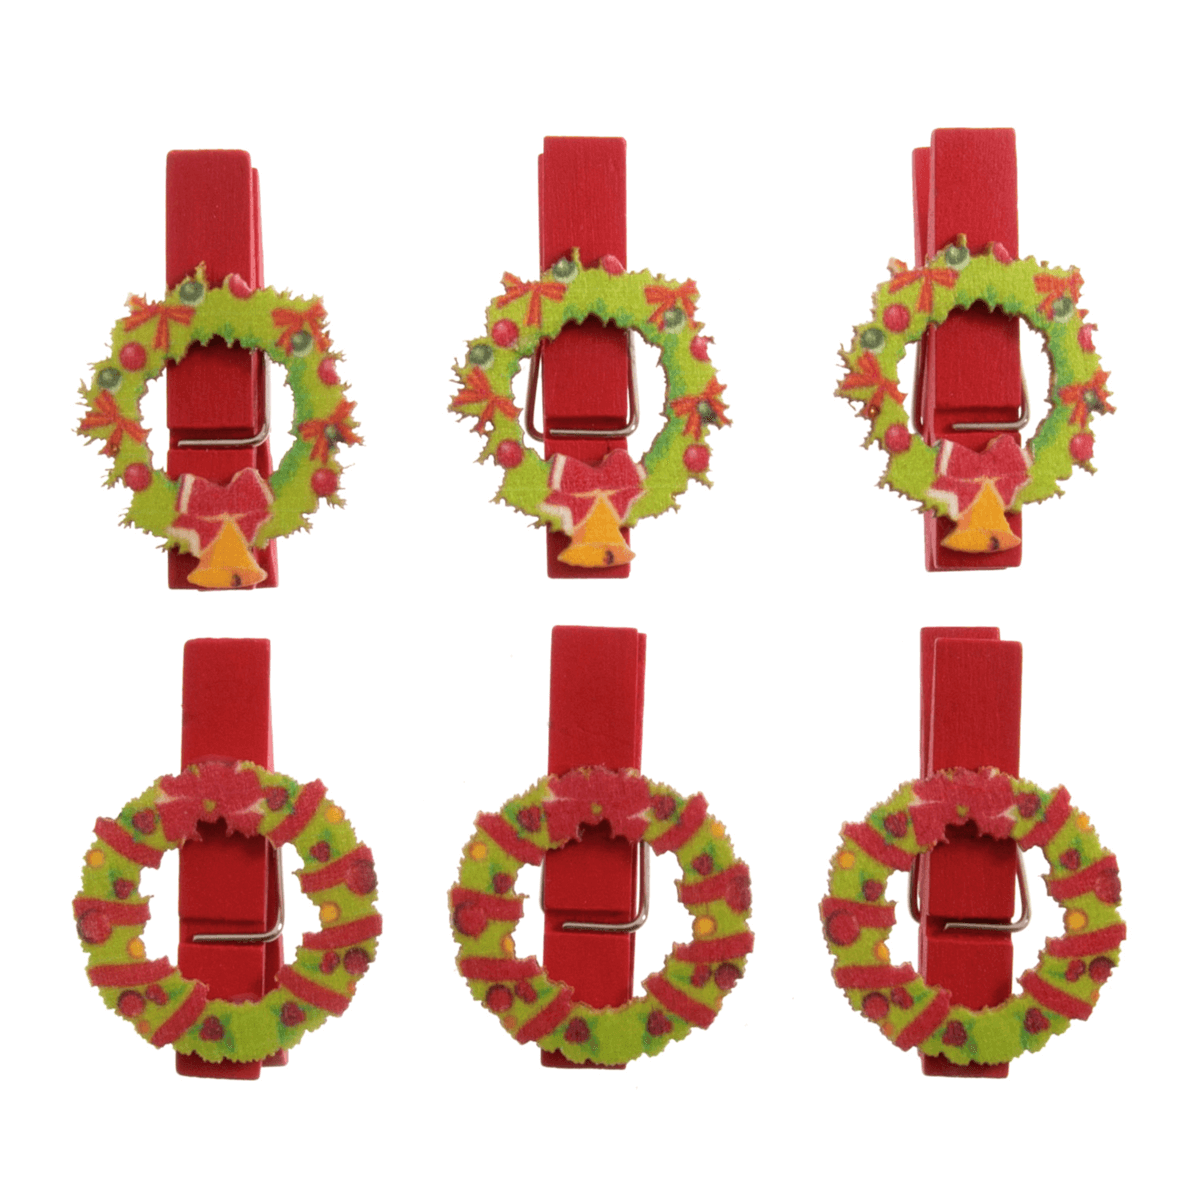 6 x Christmas Wooden Wreath Pegs Embellishments Scrap booking